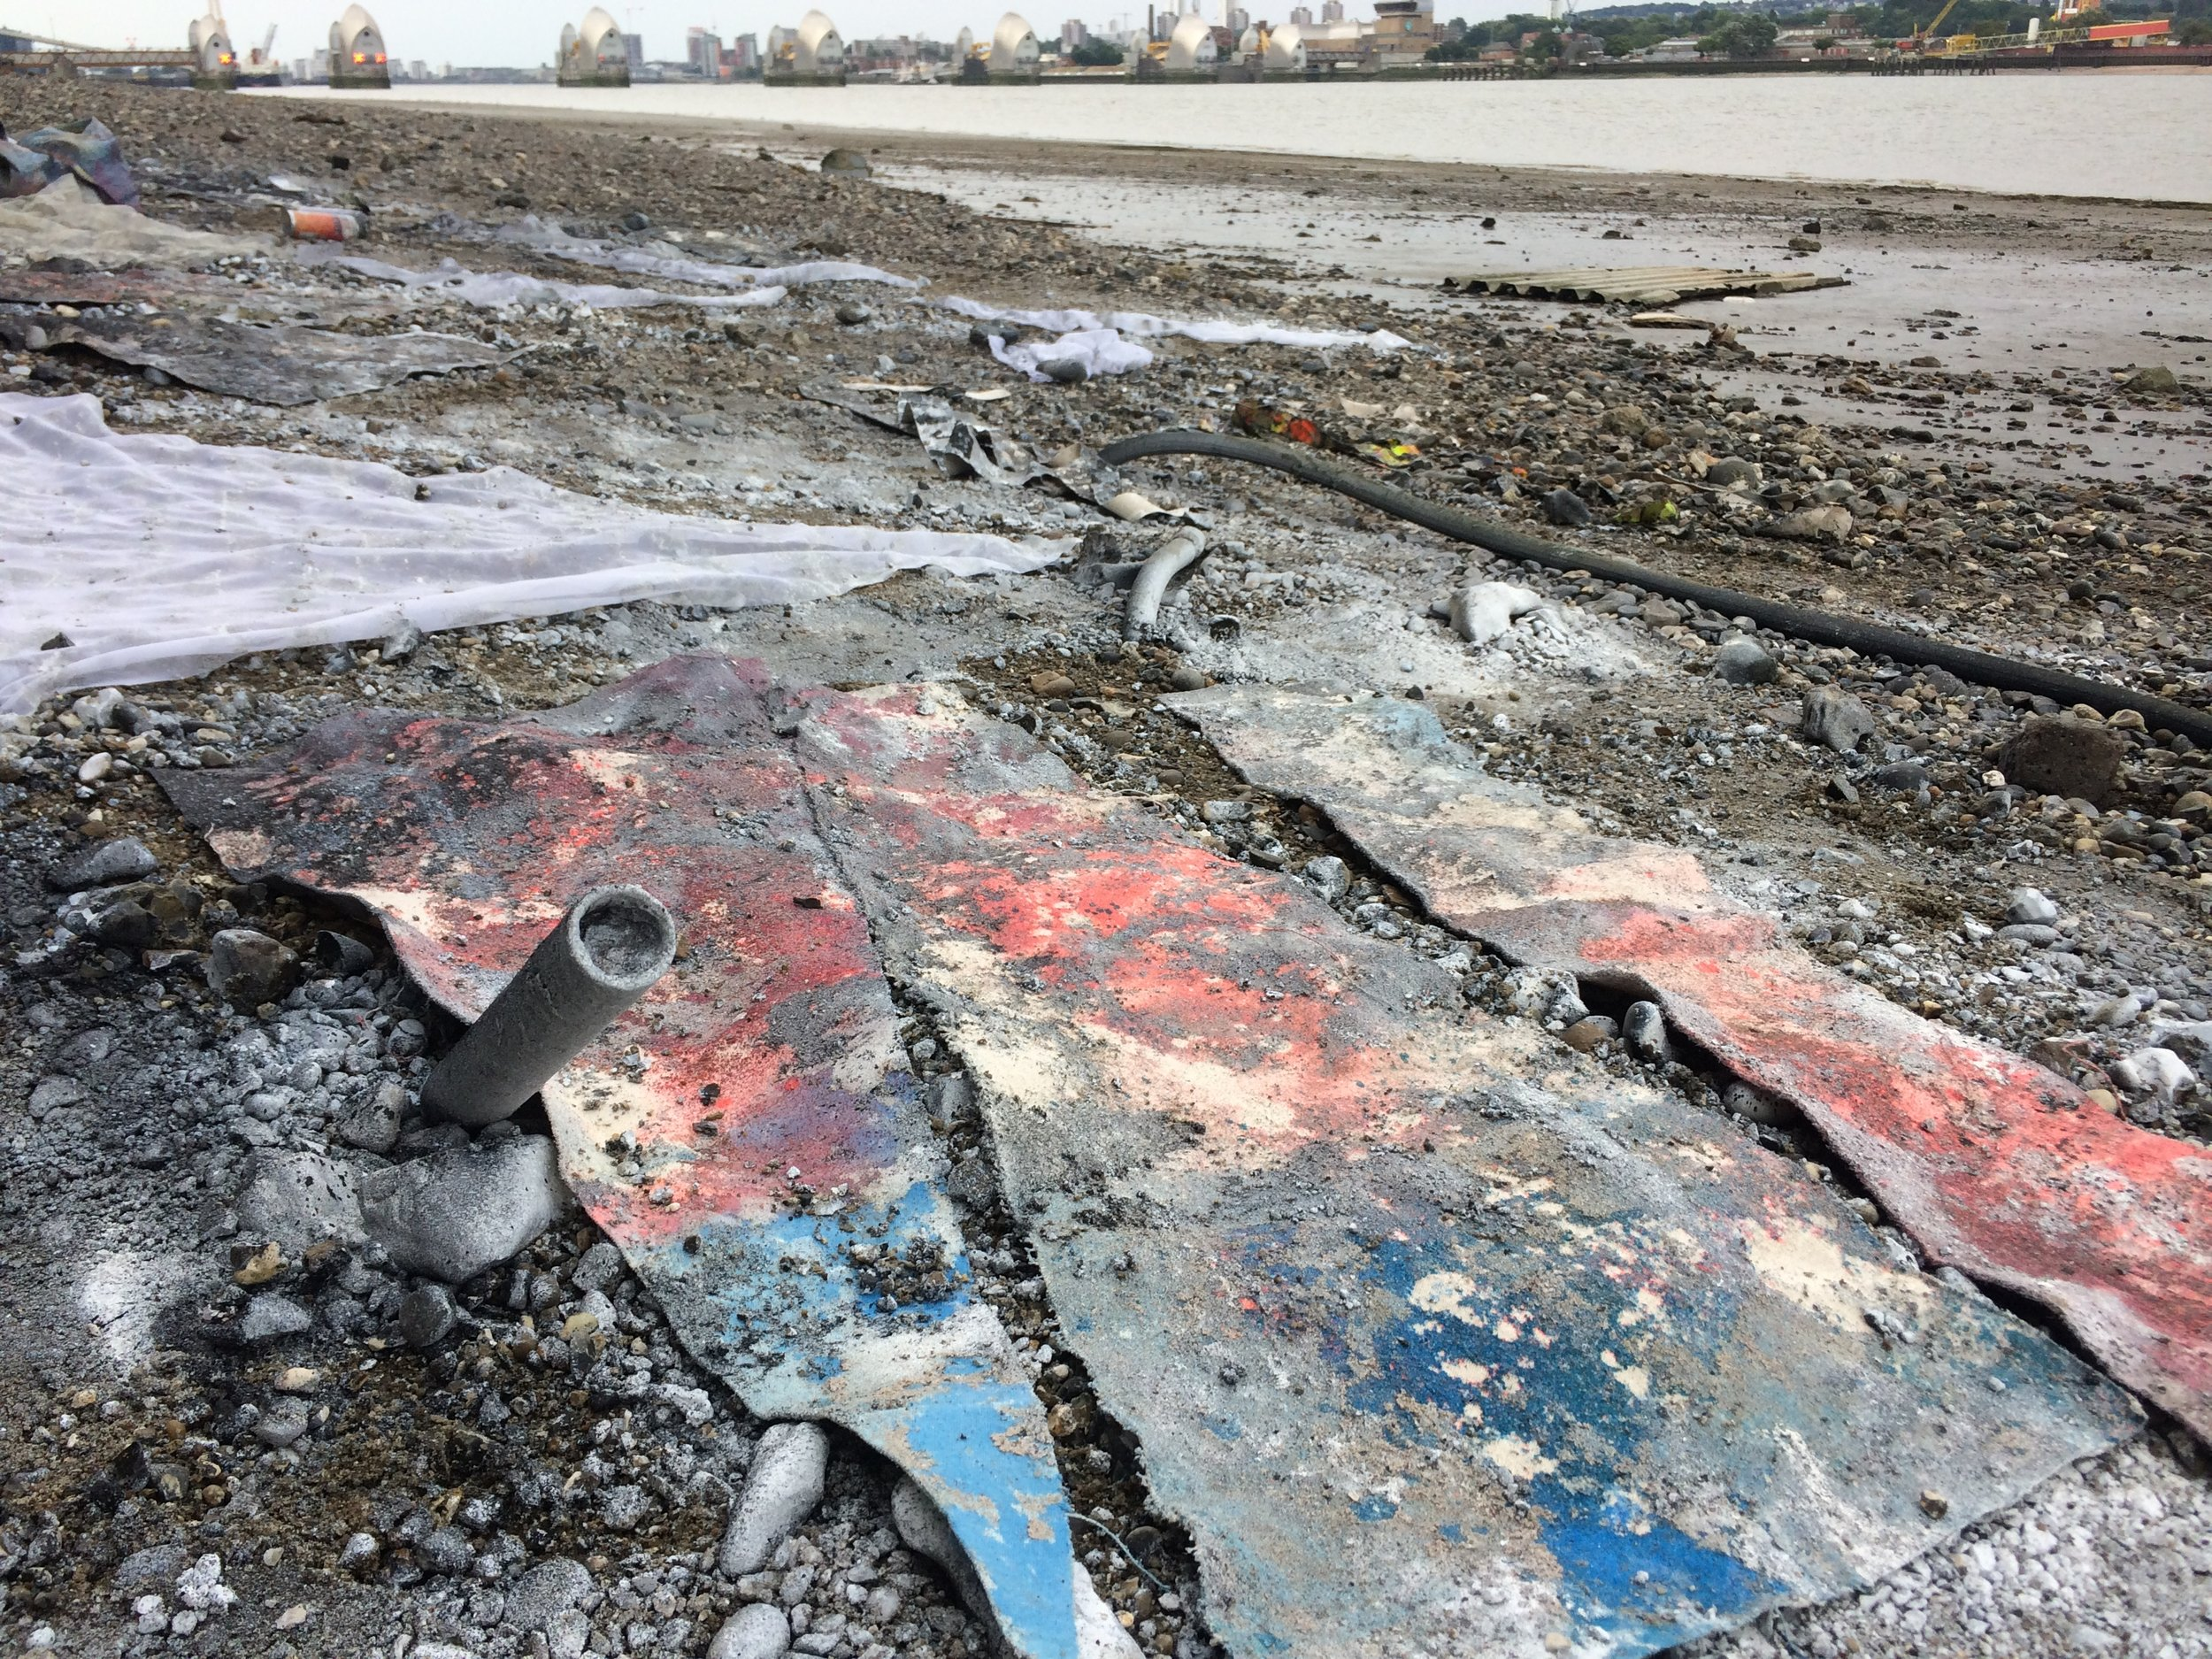 Low tide sludge and pebble painting.  North Greenwich, London 2018.